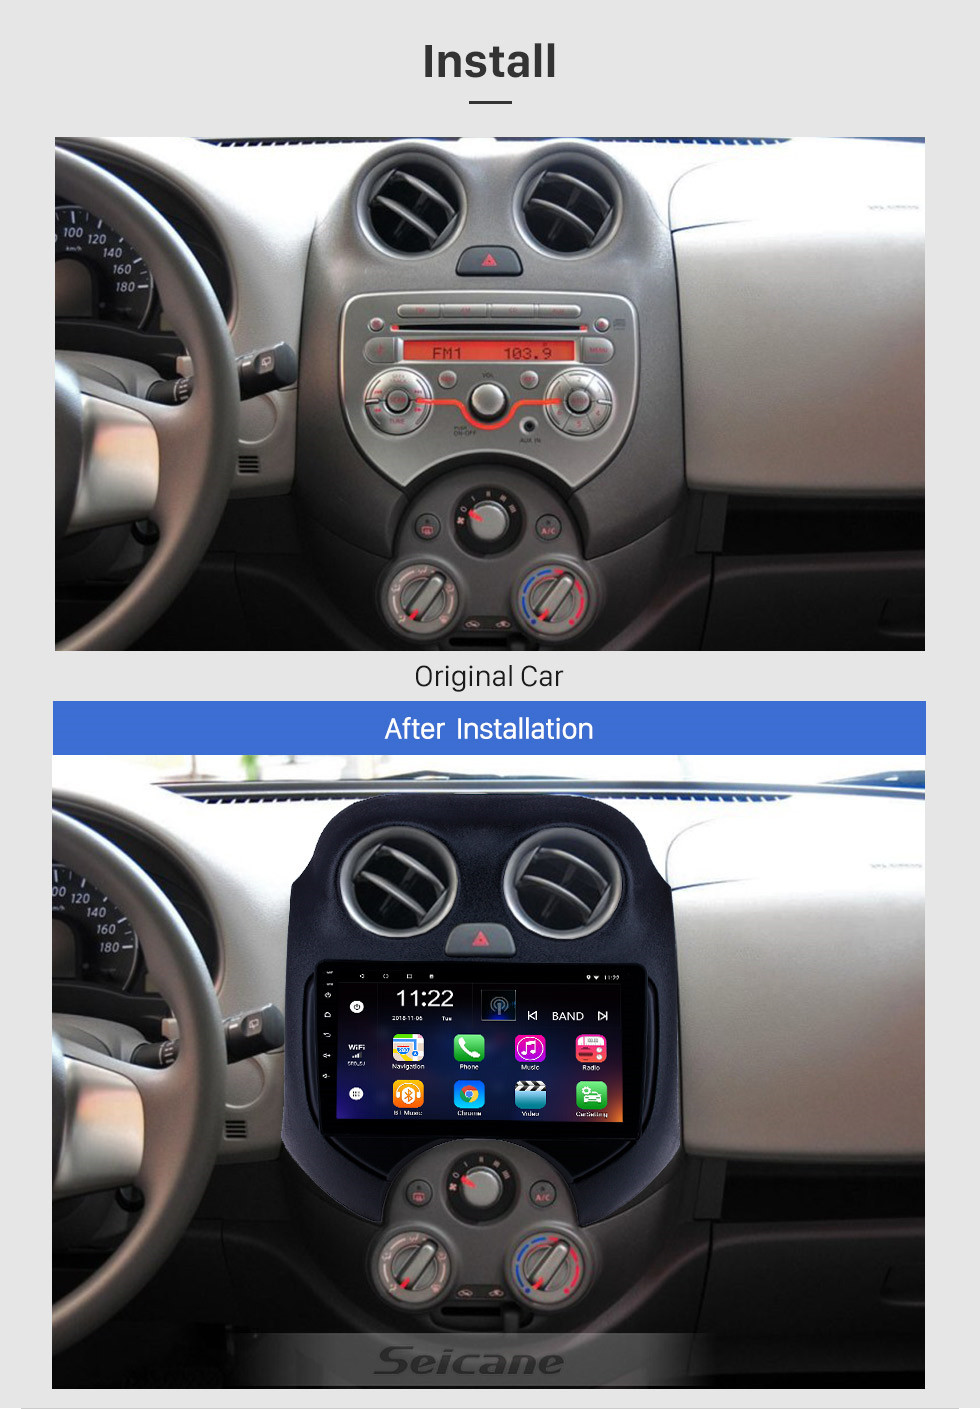 Seicane HD Touchscreen 9 inch Android 10.0 GPS Navigation Radio for 2010 NISSAN MARCH with Bluetooth USB WIFI AUX support DVR Carplay SWC 3G OBD Backup camera